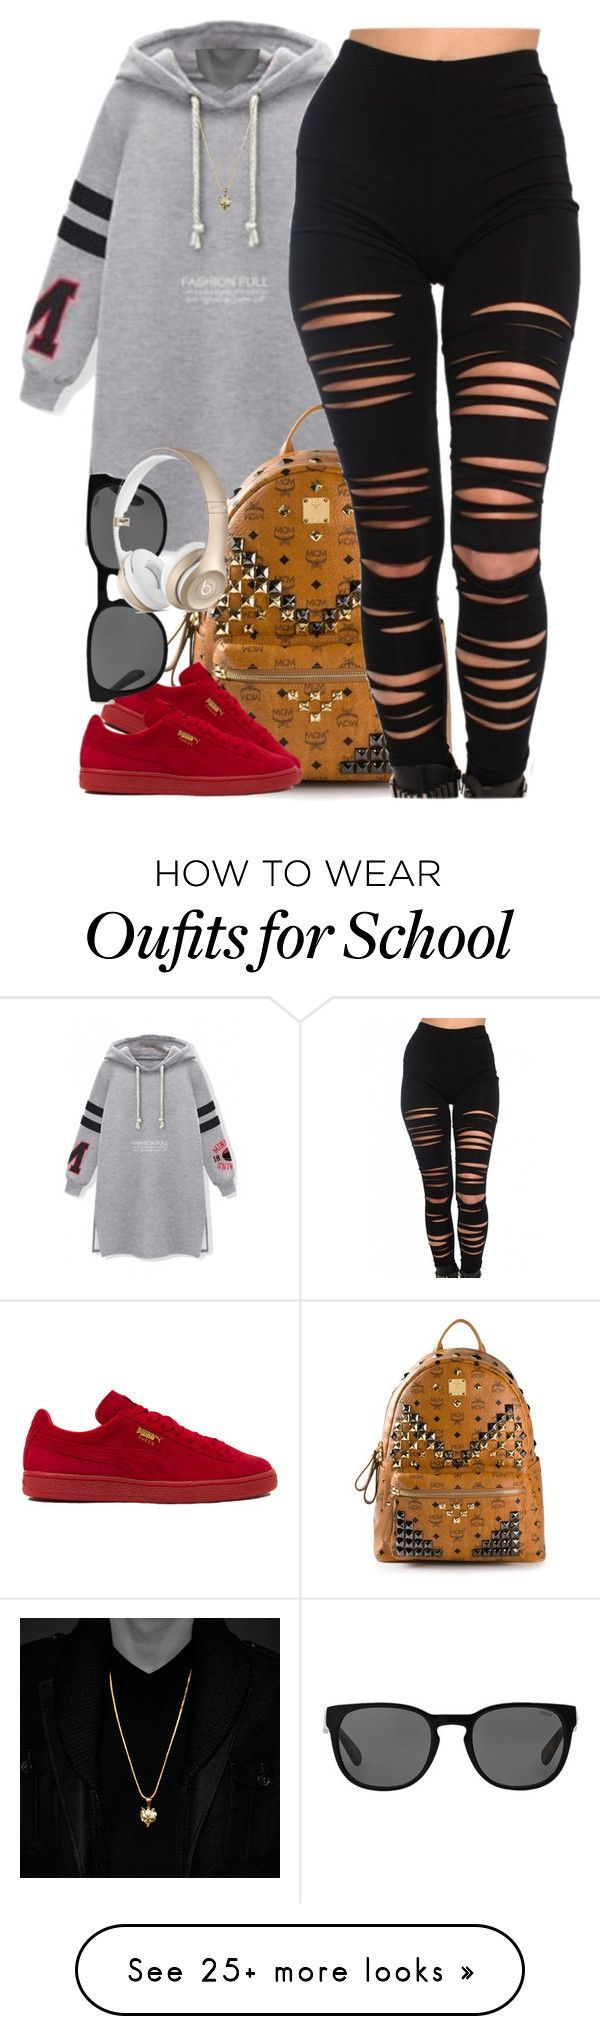 """soo tired of school rn"" by cjasmyne on Polyvore featuring MCM, Akira, Puma and Polo Ralph Lauren"